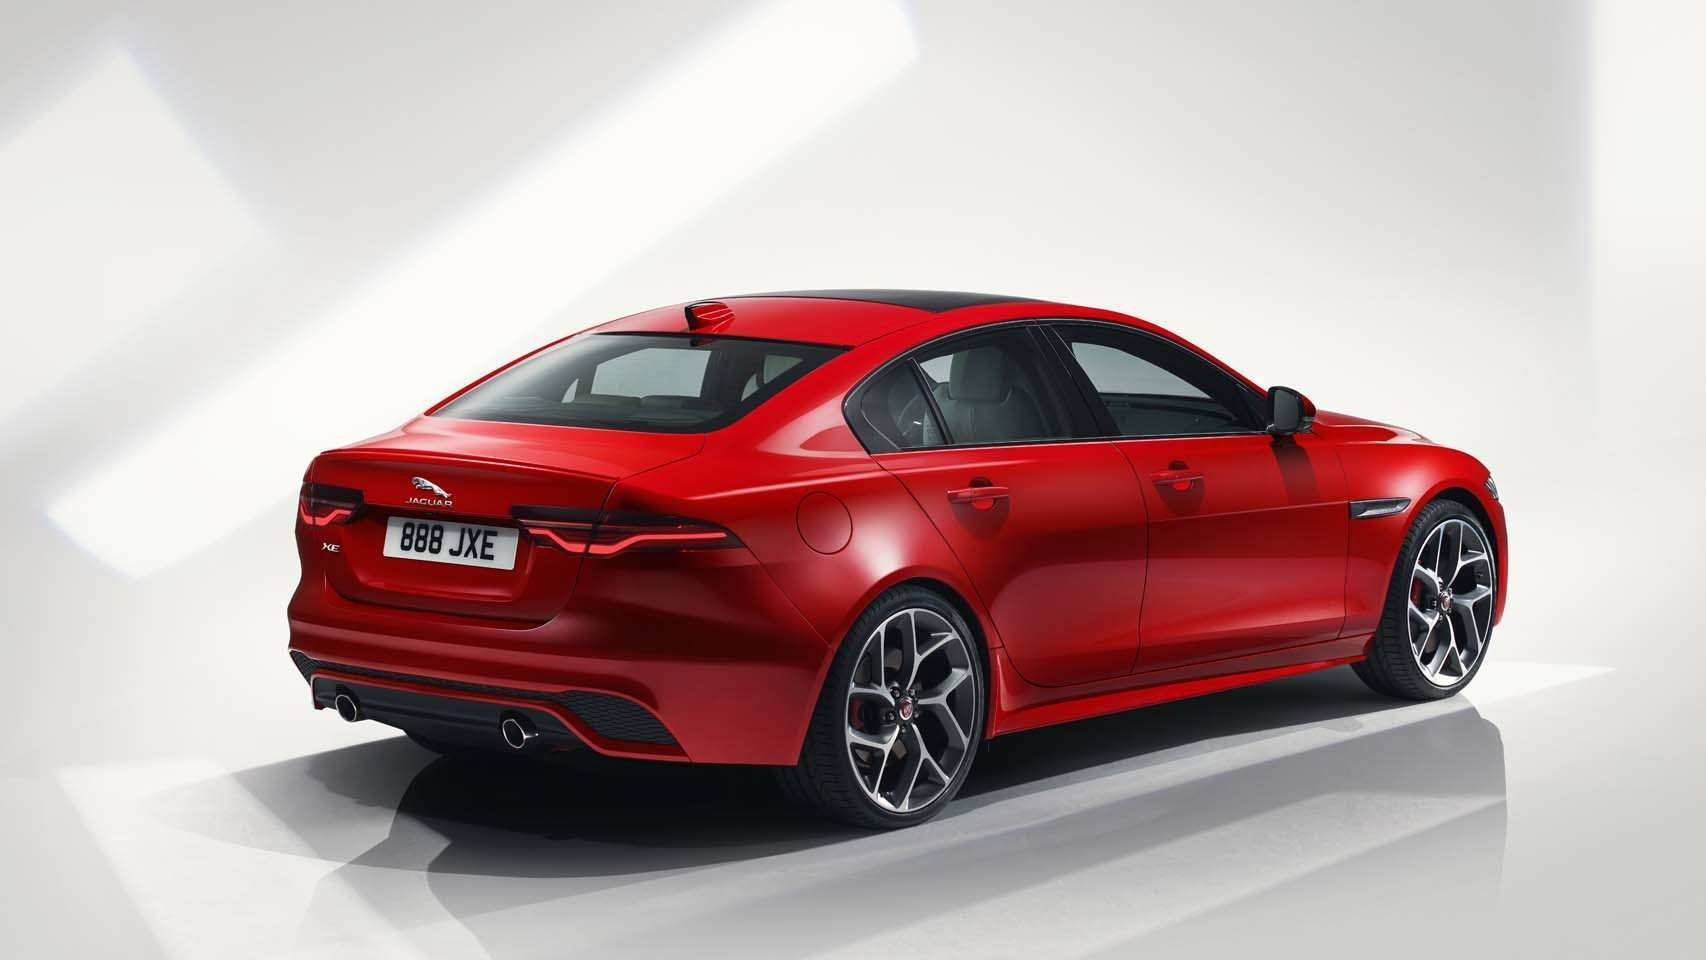 49 New 2020 Jaguar Xe Sedan Concept